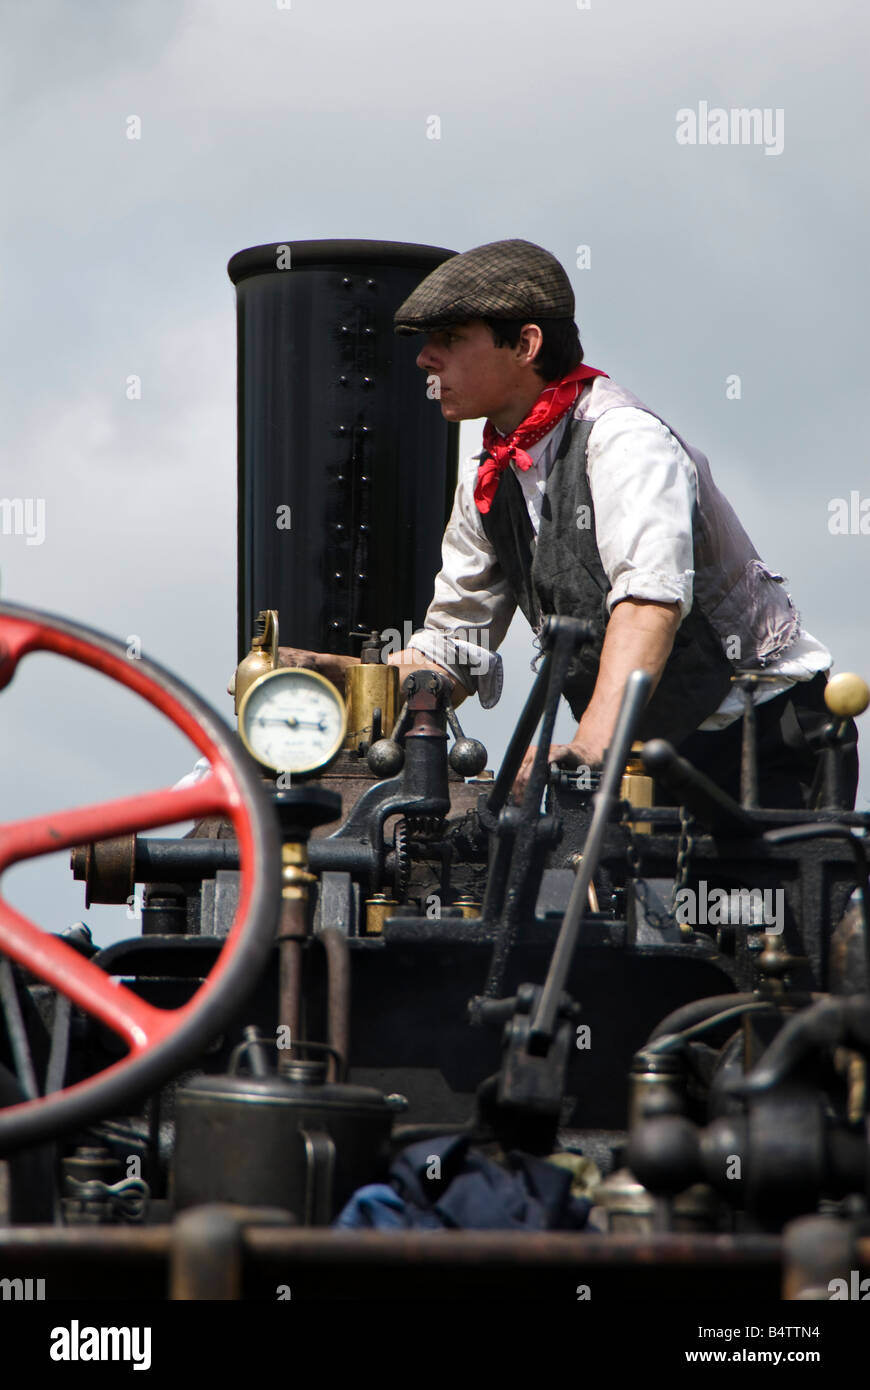 A young enthusiast in traditional dress maintans a steam traction engine at a vintage vehicle show. UK - Stock Image